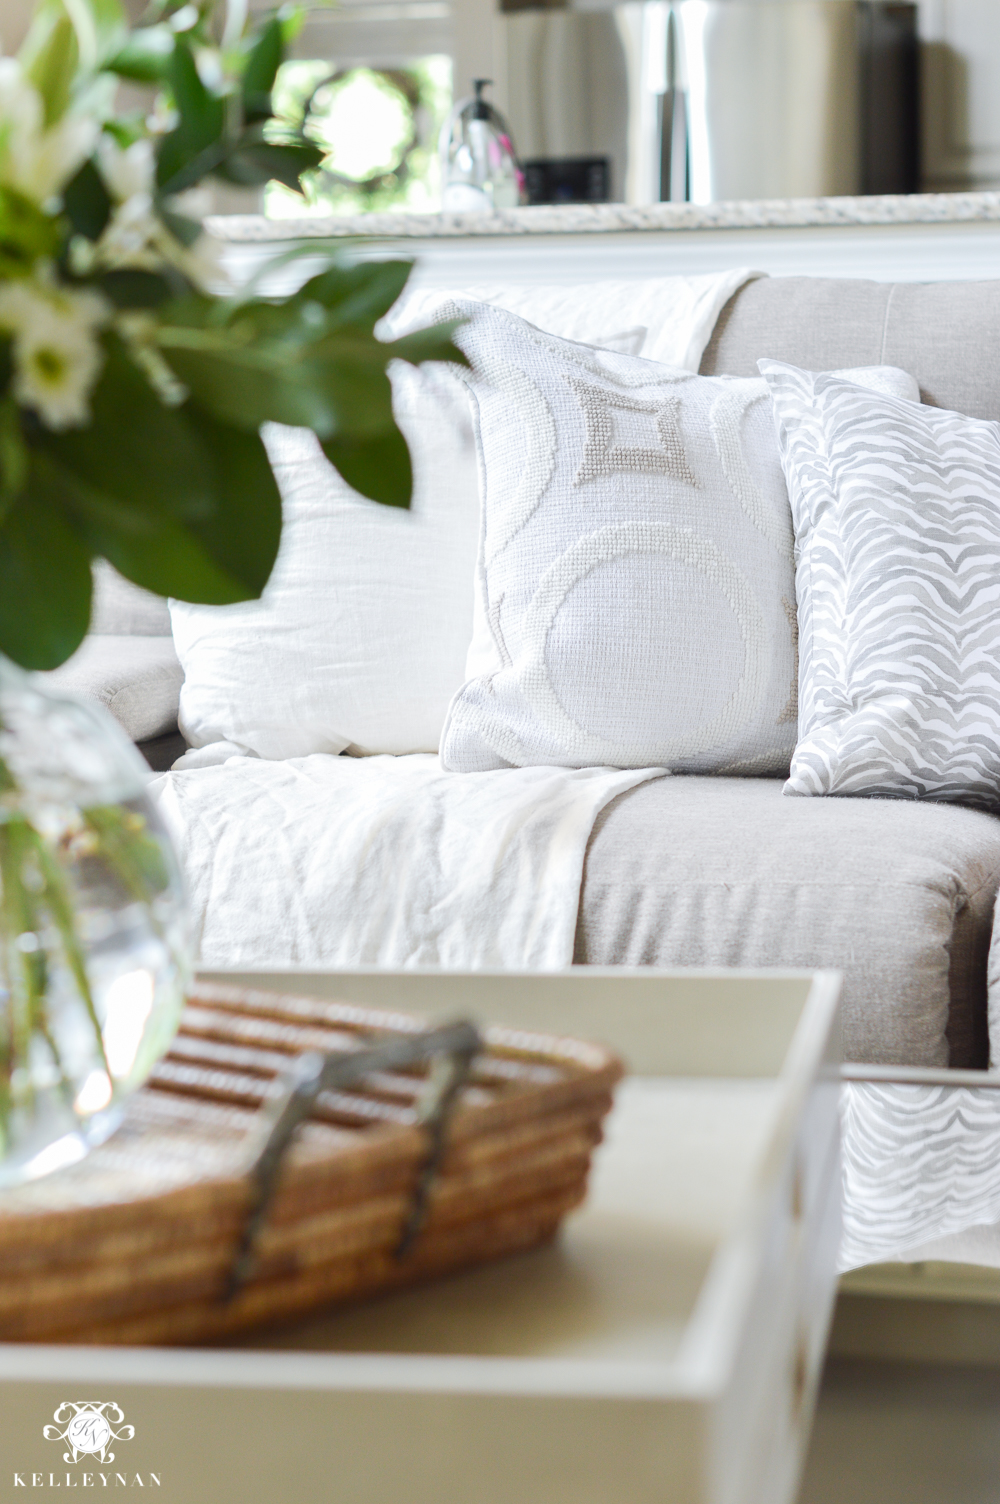 Shades of Summer Home Tour with Neutrals and Naturals-neutral pillows on summer sofa